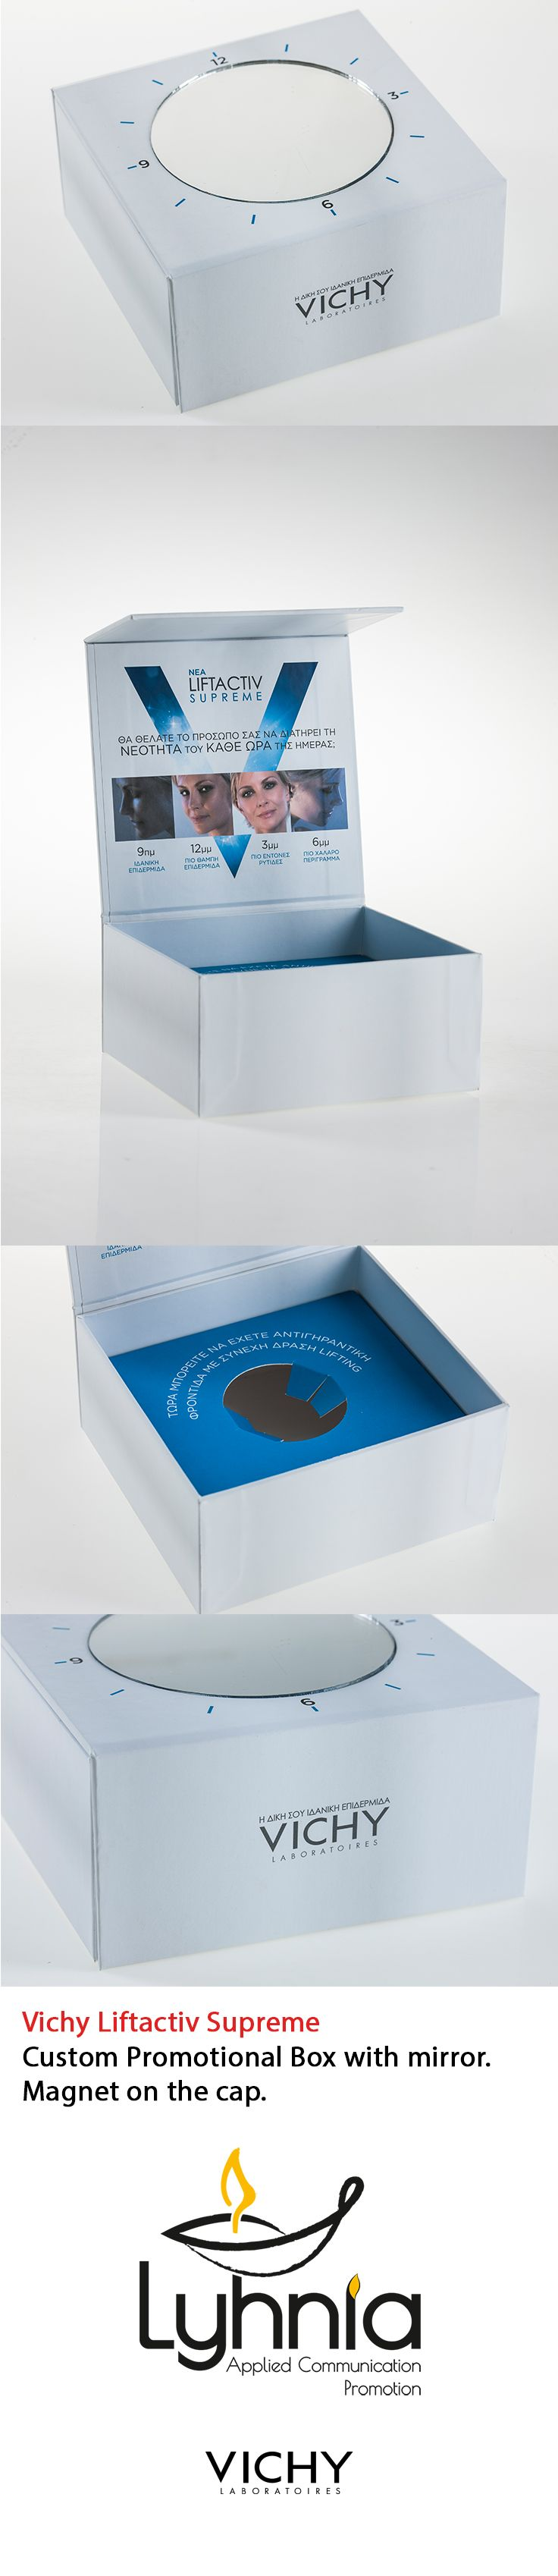 Vichy Liftactiv Supreme Custom Promotional Box with mirror Magnet on the cap.